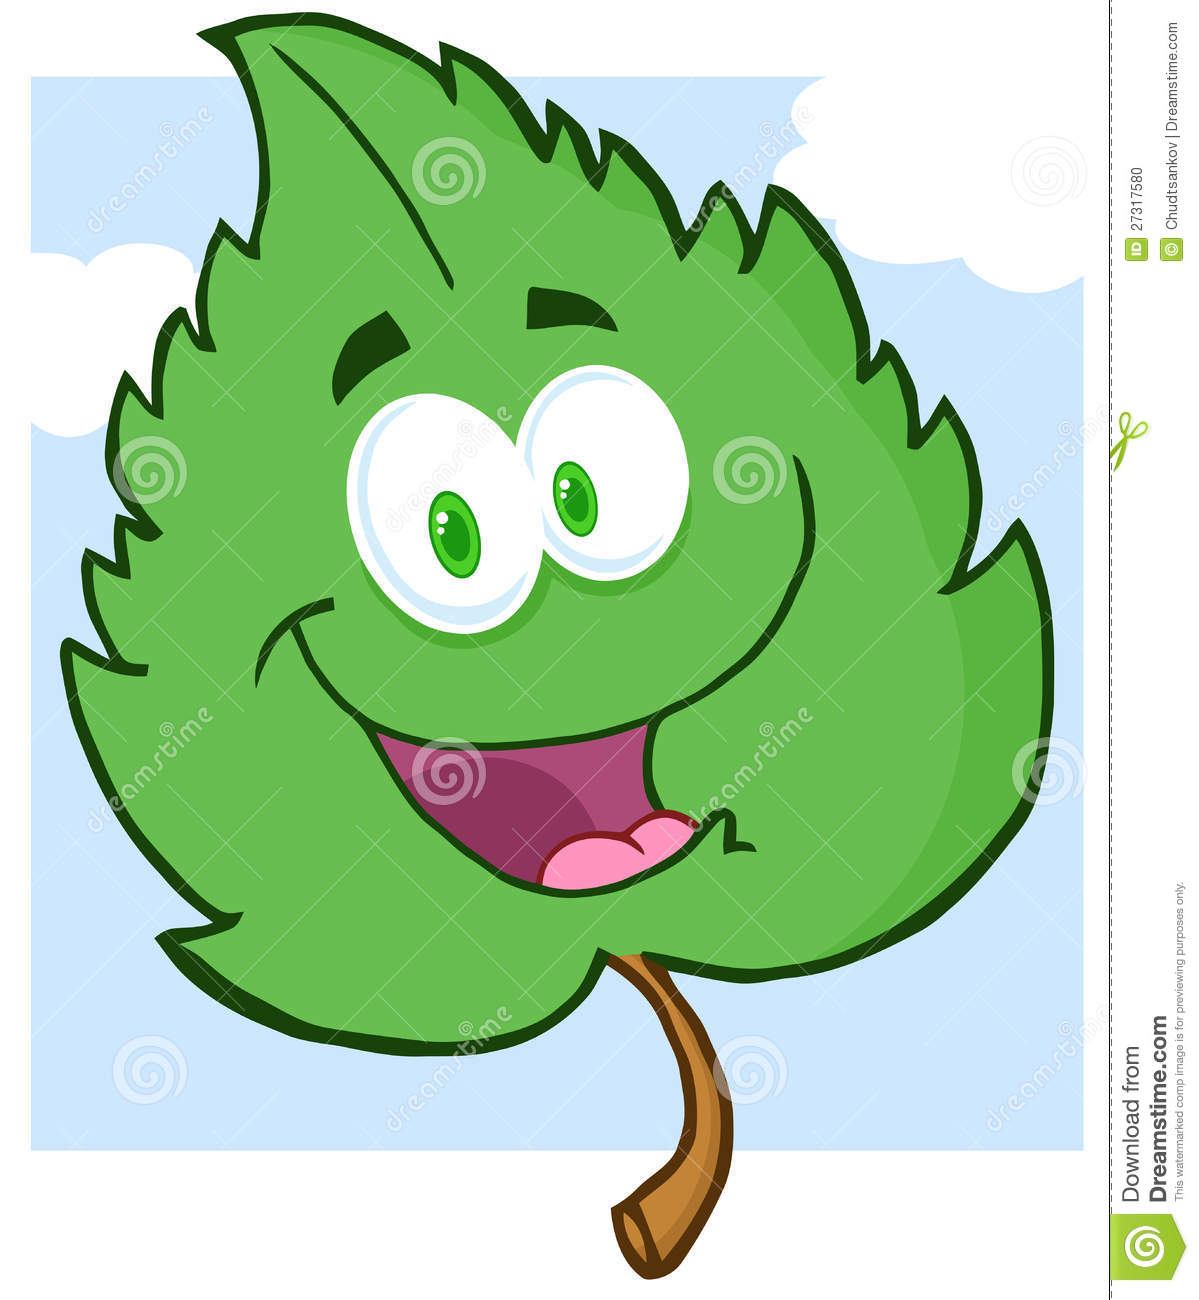 A Cartoon Character That Is Green : Green leaf cartoon character stock photo image